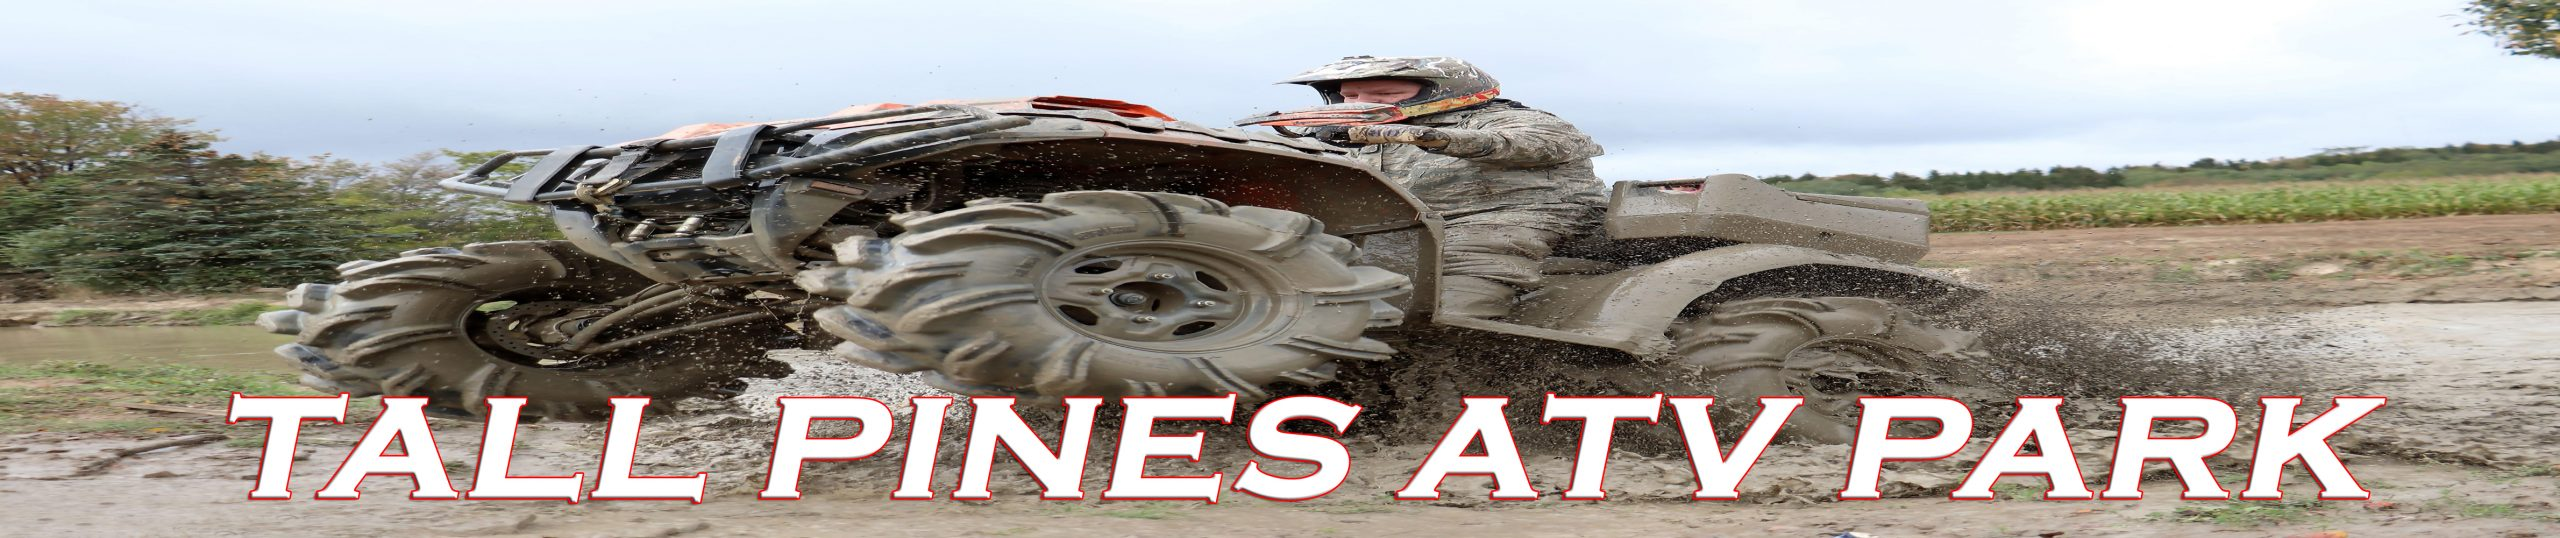 Tall Pines ATV Park